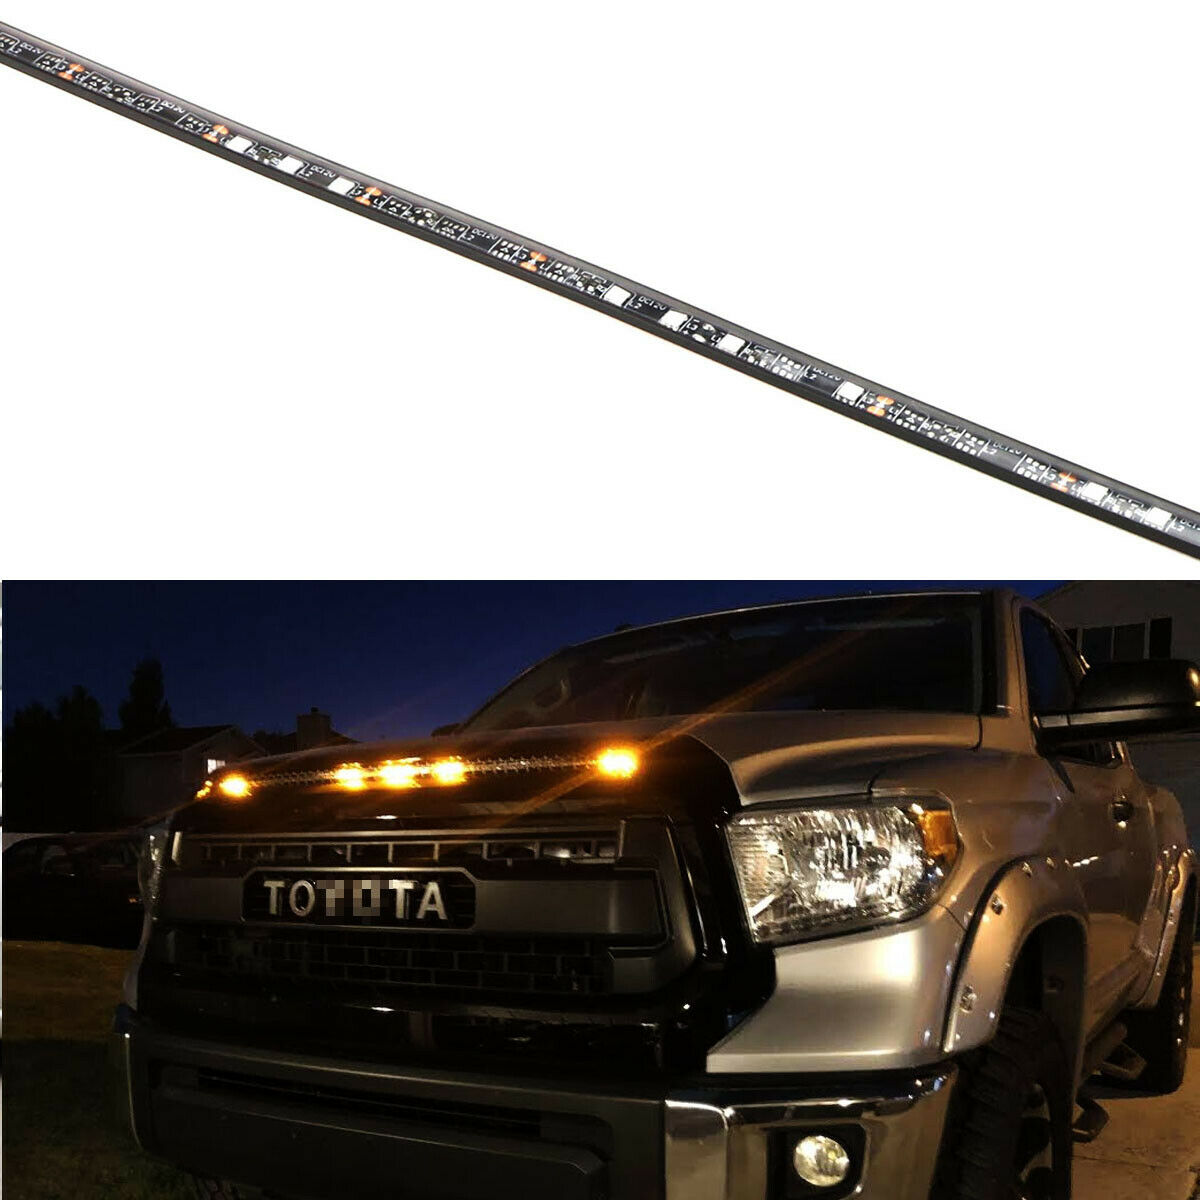 5-Bar/Section Amber Raptor Style LED Hood Bulge Grille Light For Toyota Tundra 10